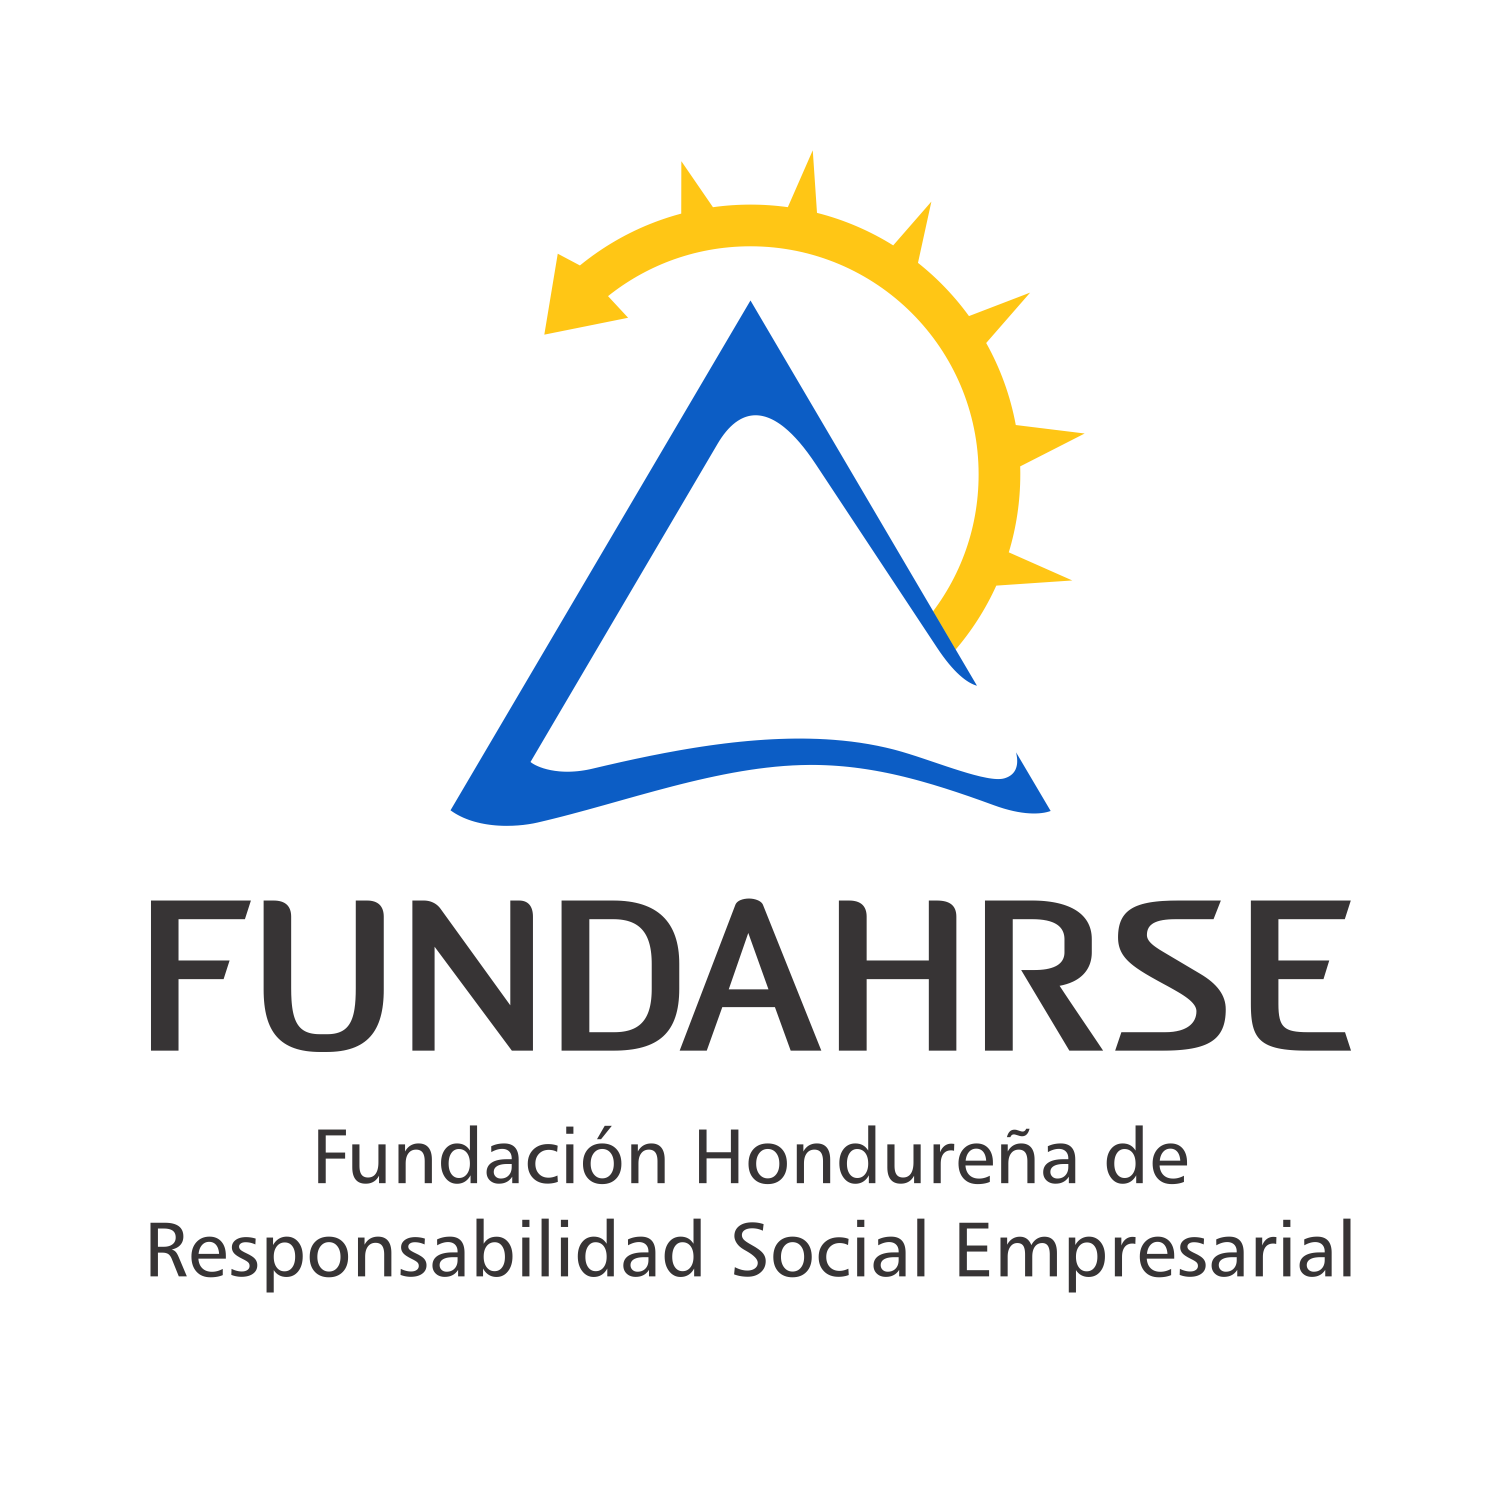 https://honduras.waterforpeople.org/wp-content/uploads/sites/5/2021/03/FUNDAHRSE-RGB-copia-2.png